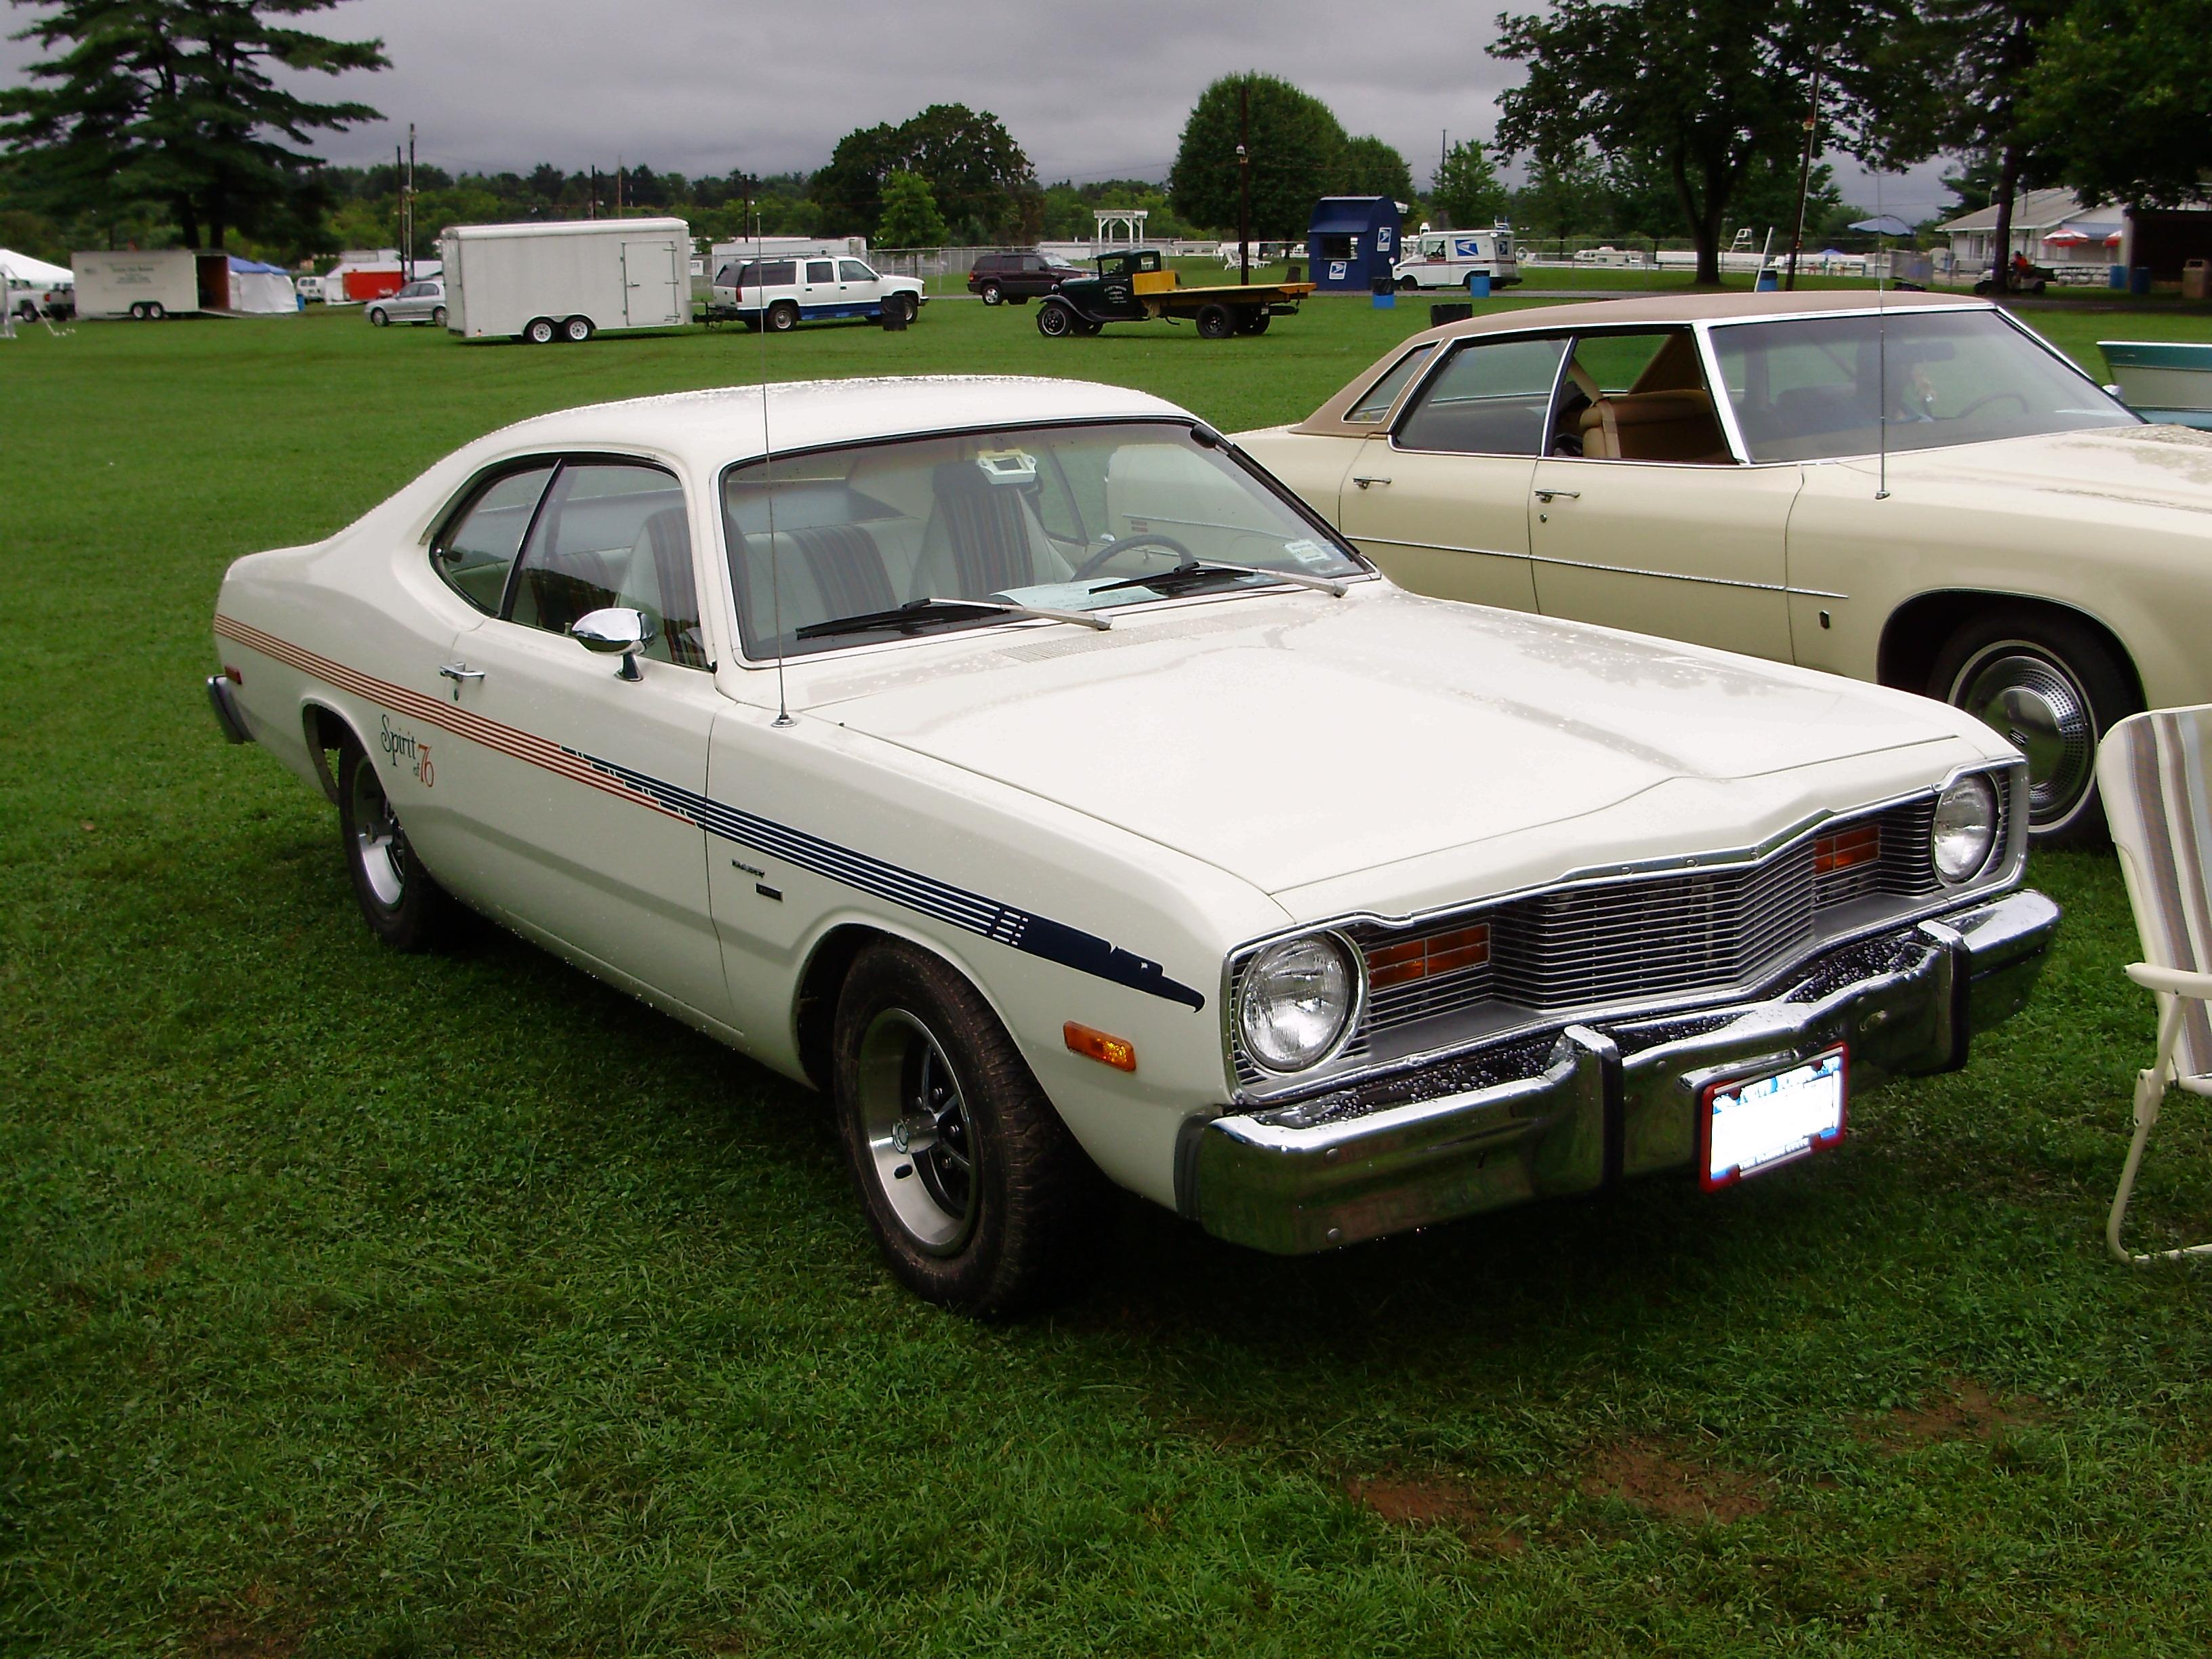 1976 Dodge Dart Images | Pictures and Videos